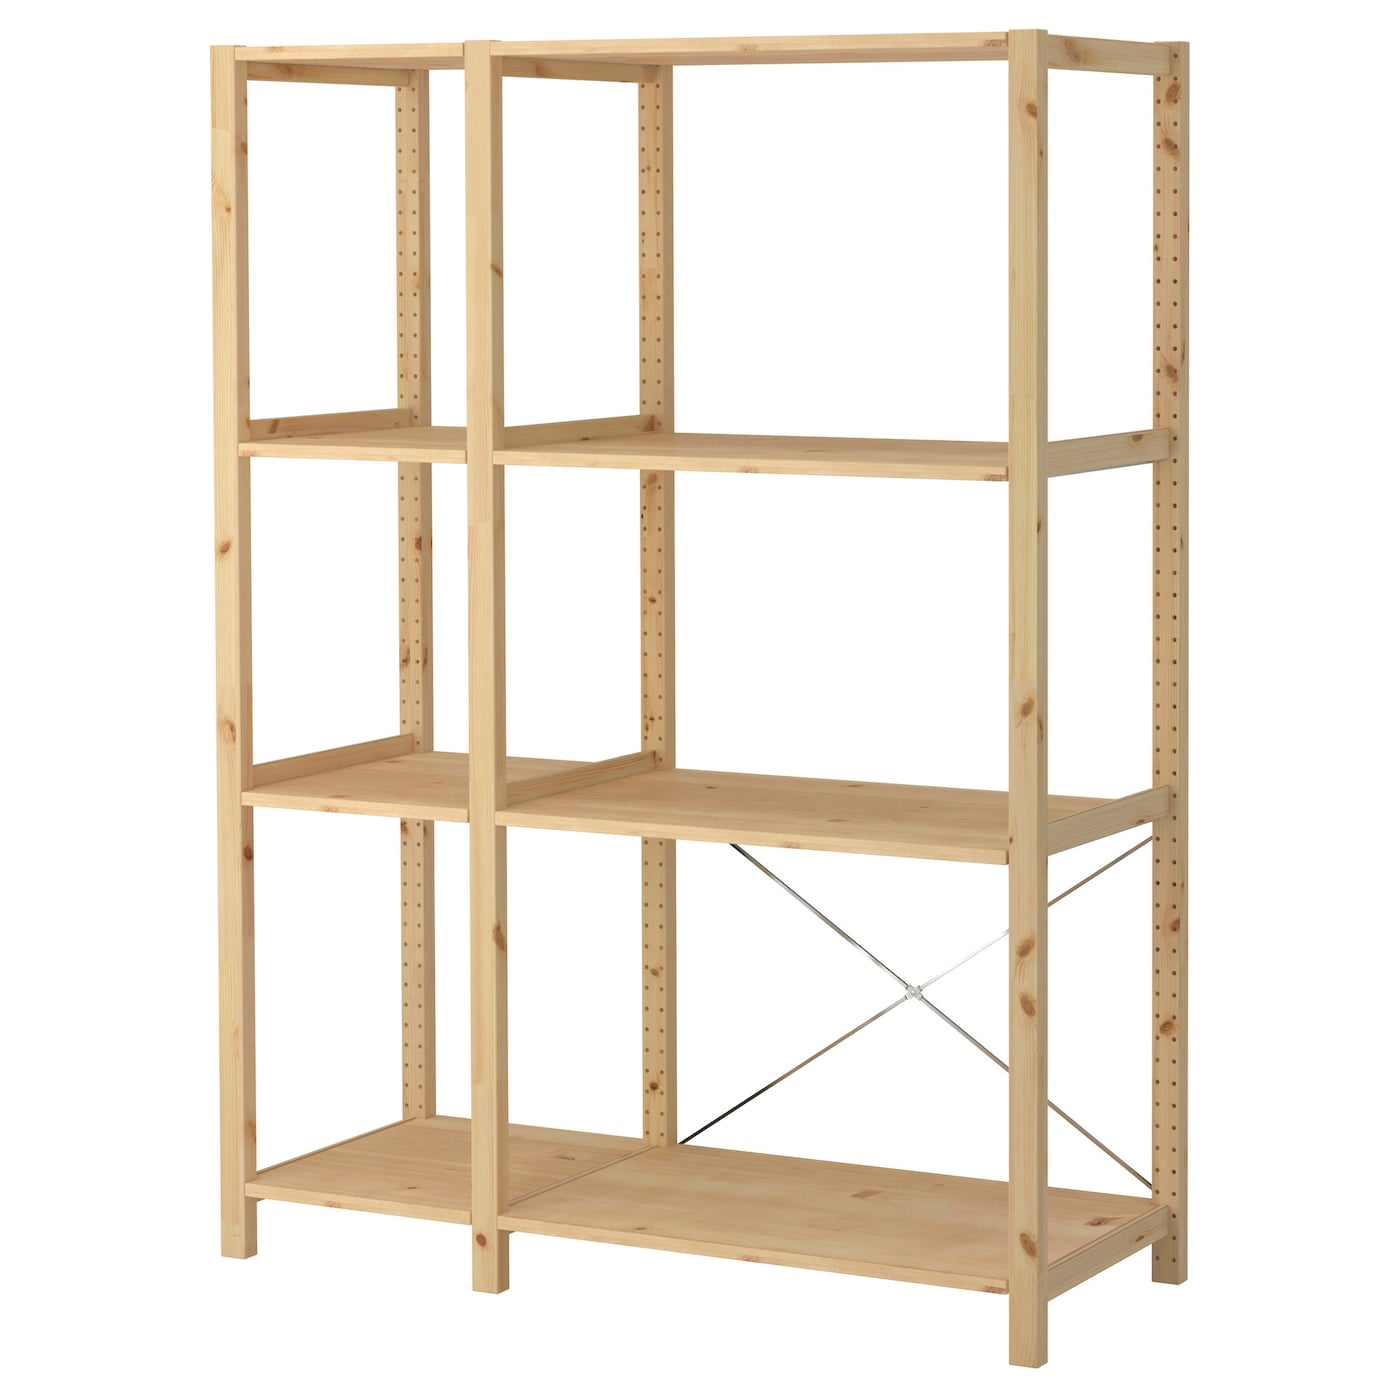 storage shelving unit ivar 2 sections shelves pine 134 x 50 x 179 cm ikea 26895